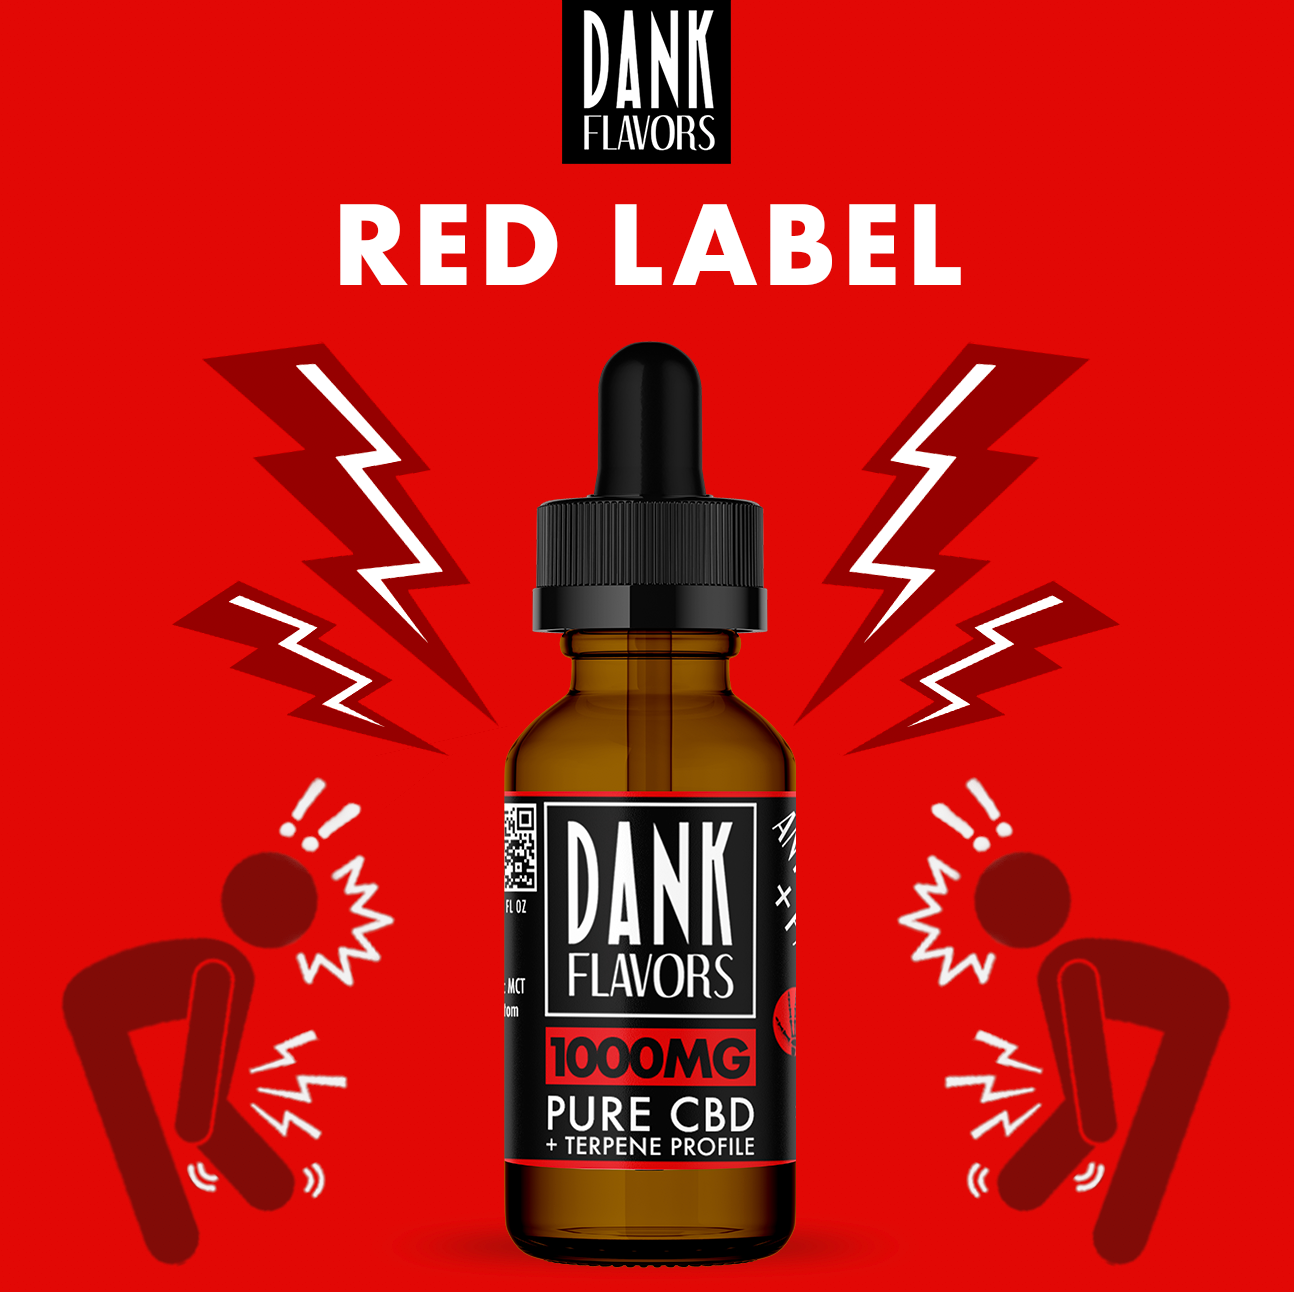 Dank Flavors CBD | Red Label